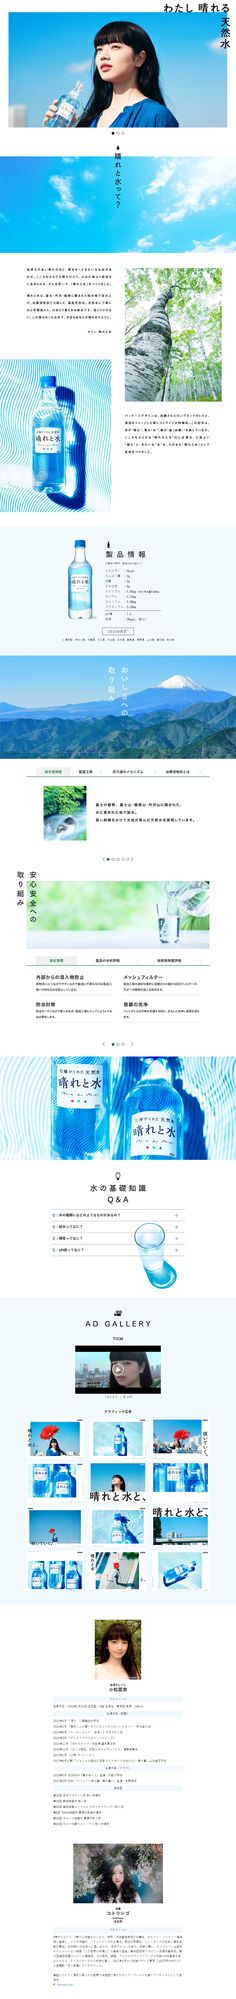 キリン 晴れと水|WEBデザイナーさん必見!ランディングページのデザイン参考に(シンプル系) Site Design, Ad Design, Graphic Design, Layout Design, Leaflet Layout, Web Layout, Webpage Layout, Construction, Ui Web